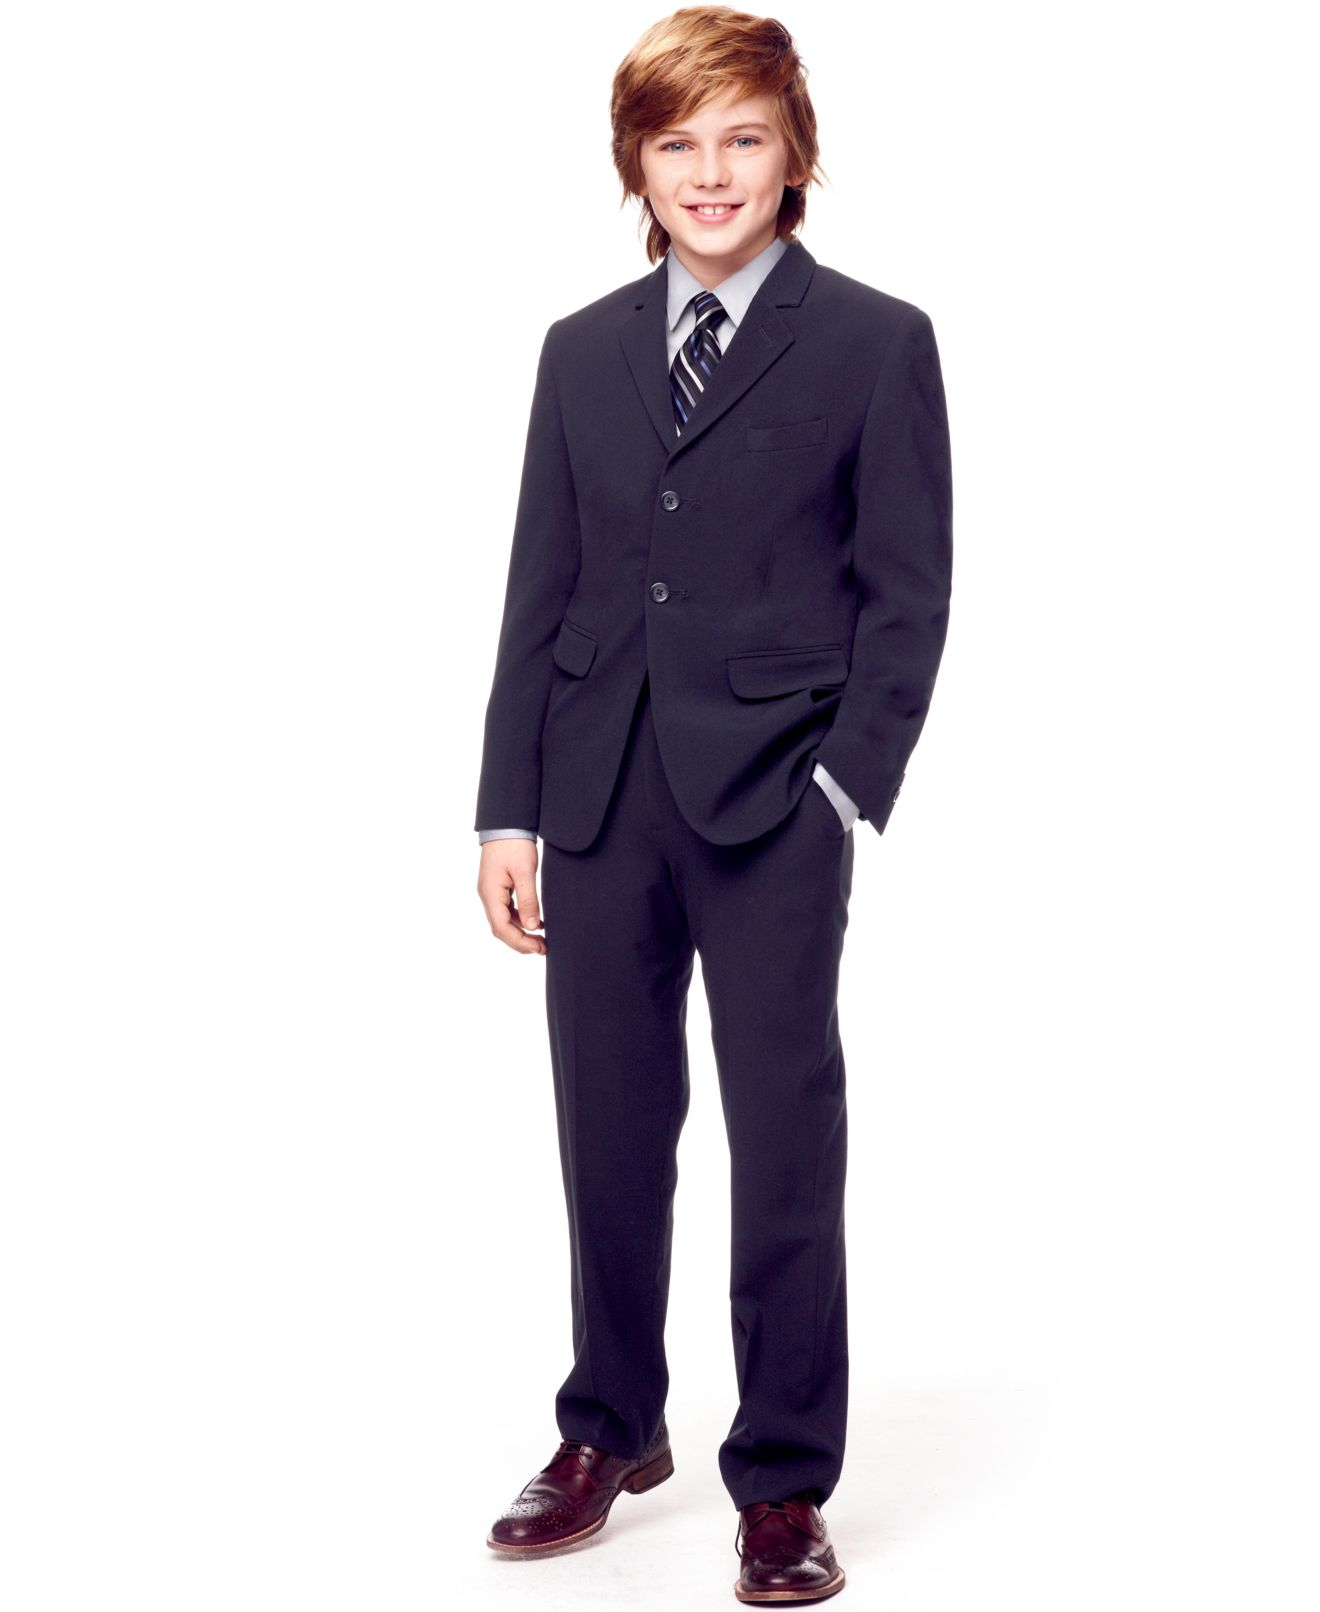 Shop for Boys' Dress Slacks online at Men's Wearhouse. Browse the latest kids size dress pant & slack styles for boys. FREE Shipping on orders $99+.